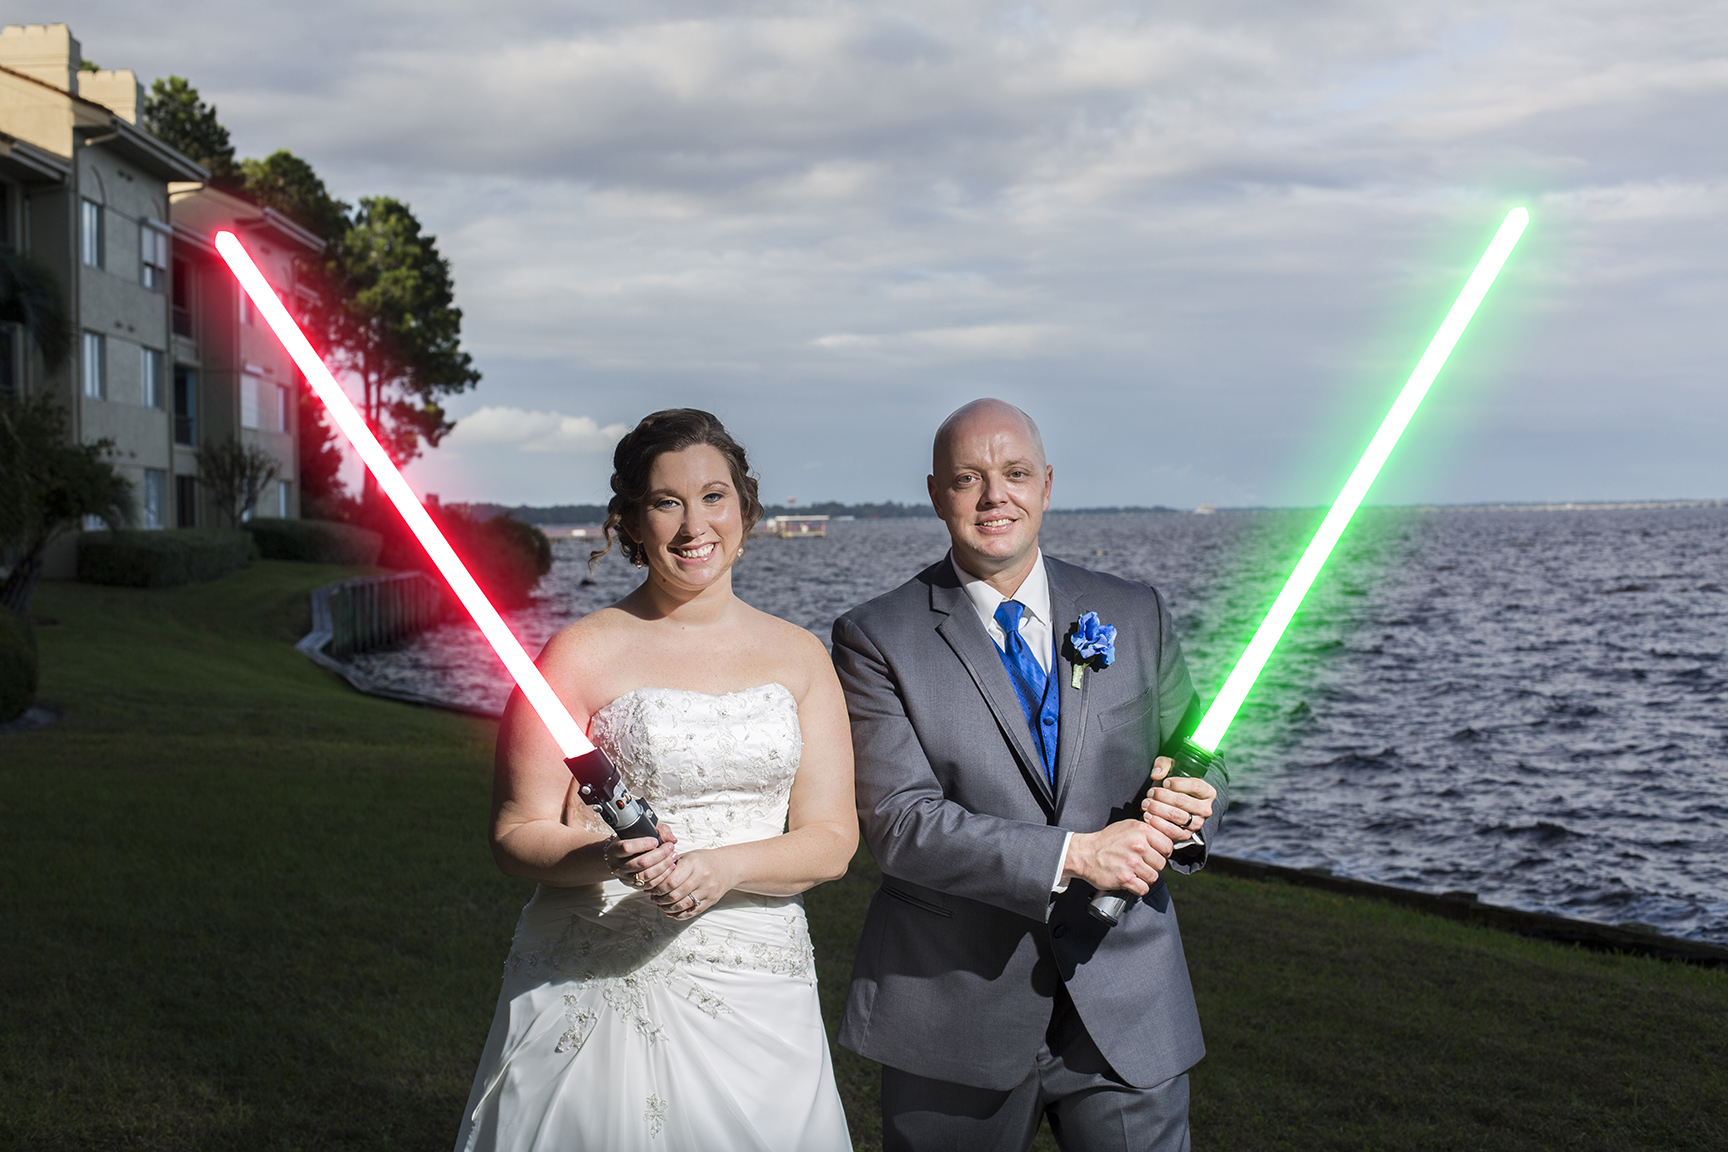 adam-szarmack-star-wars-wedding-jacksonville-photographer-36.jpg